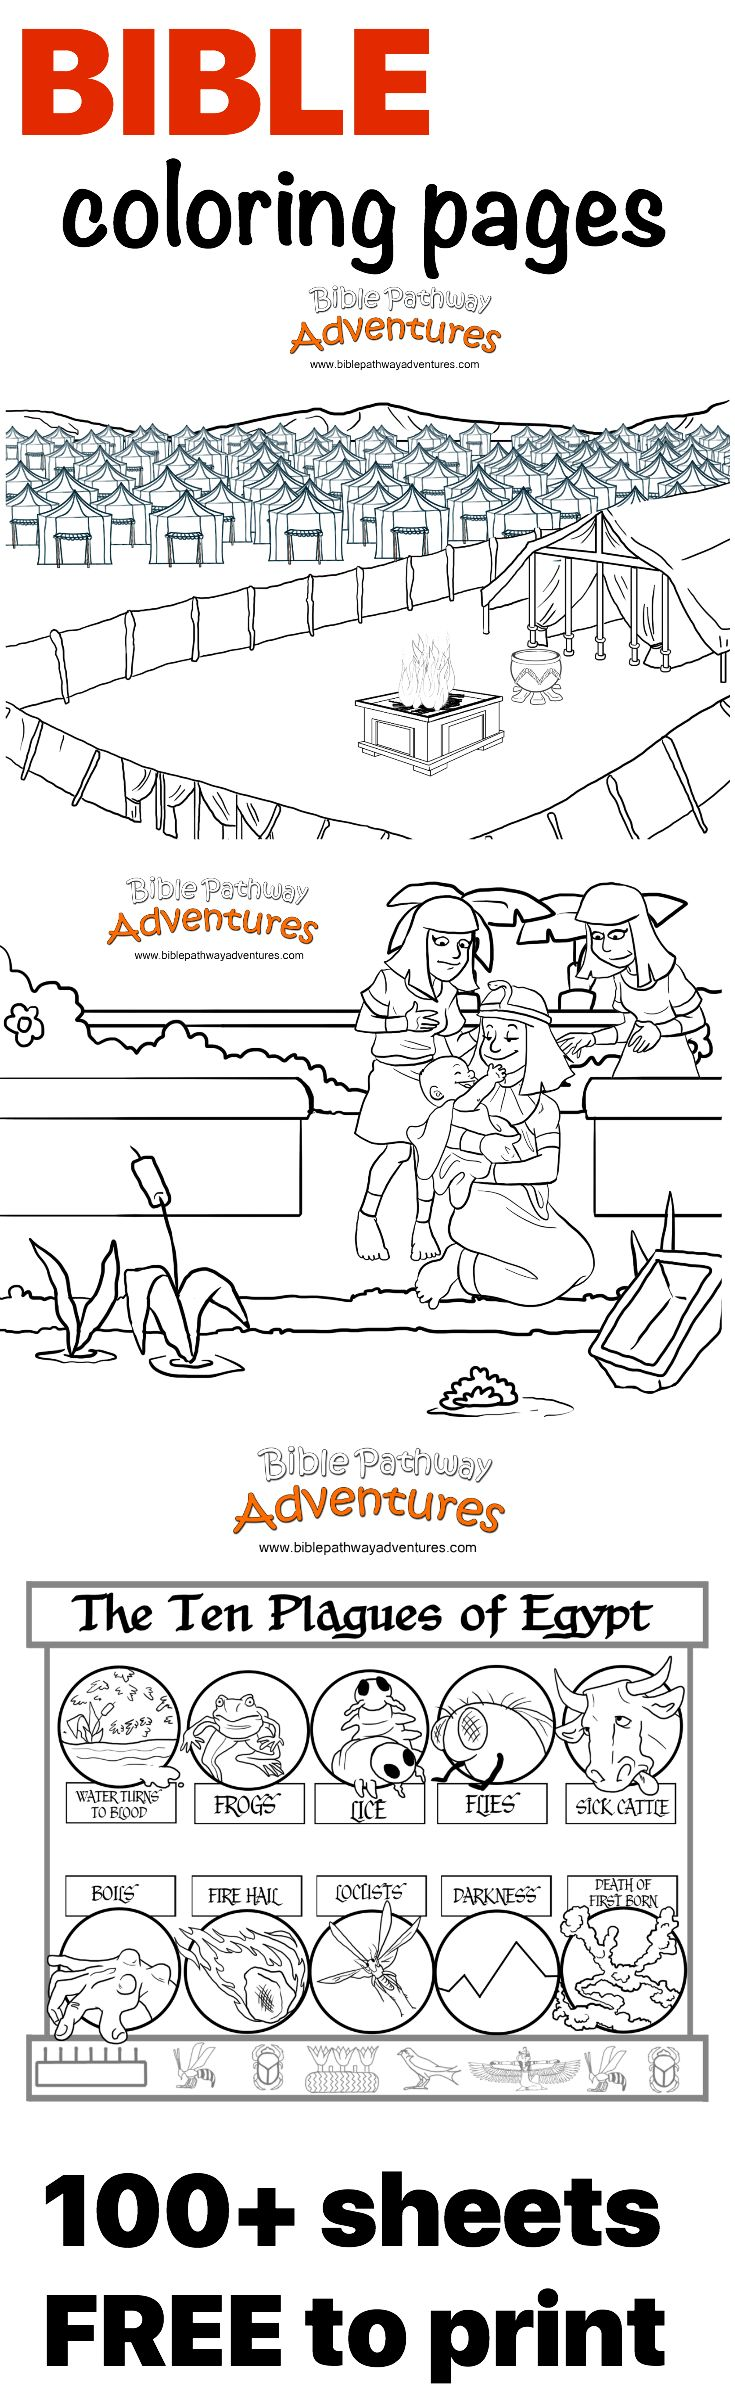 Activities Menu - Children's Bible Study